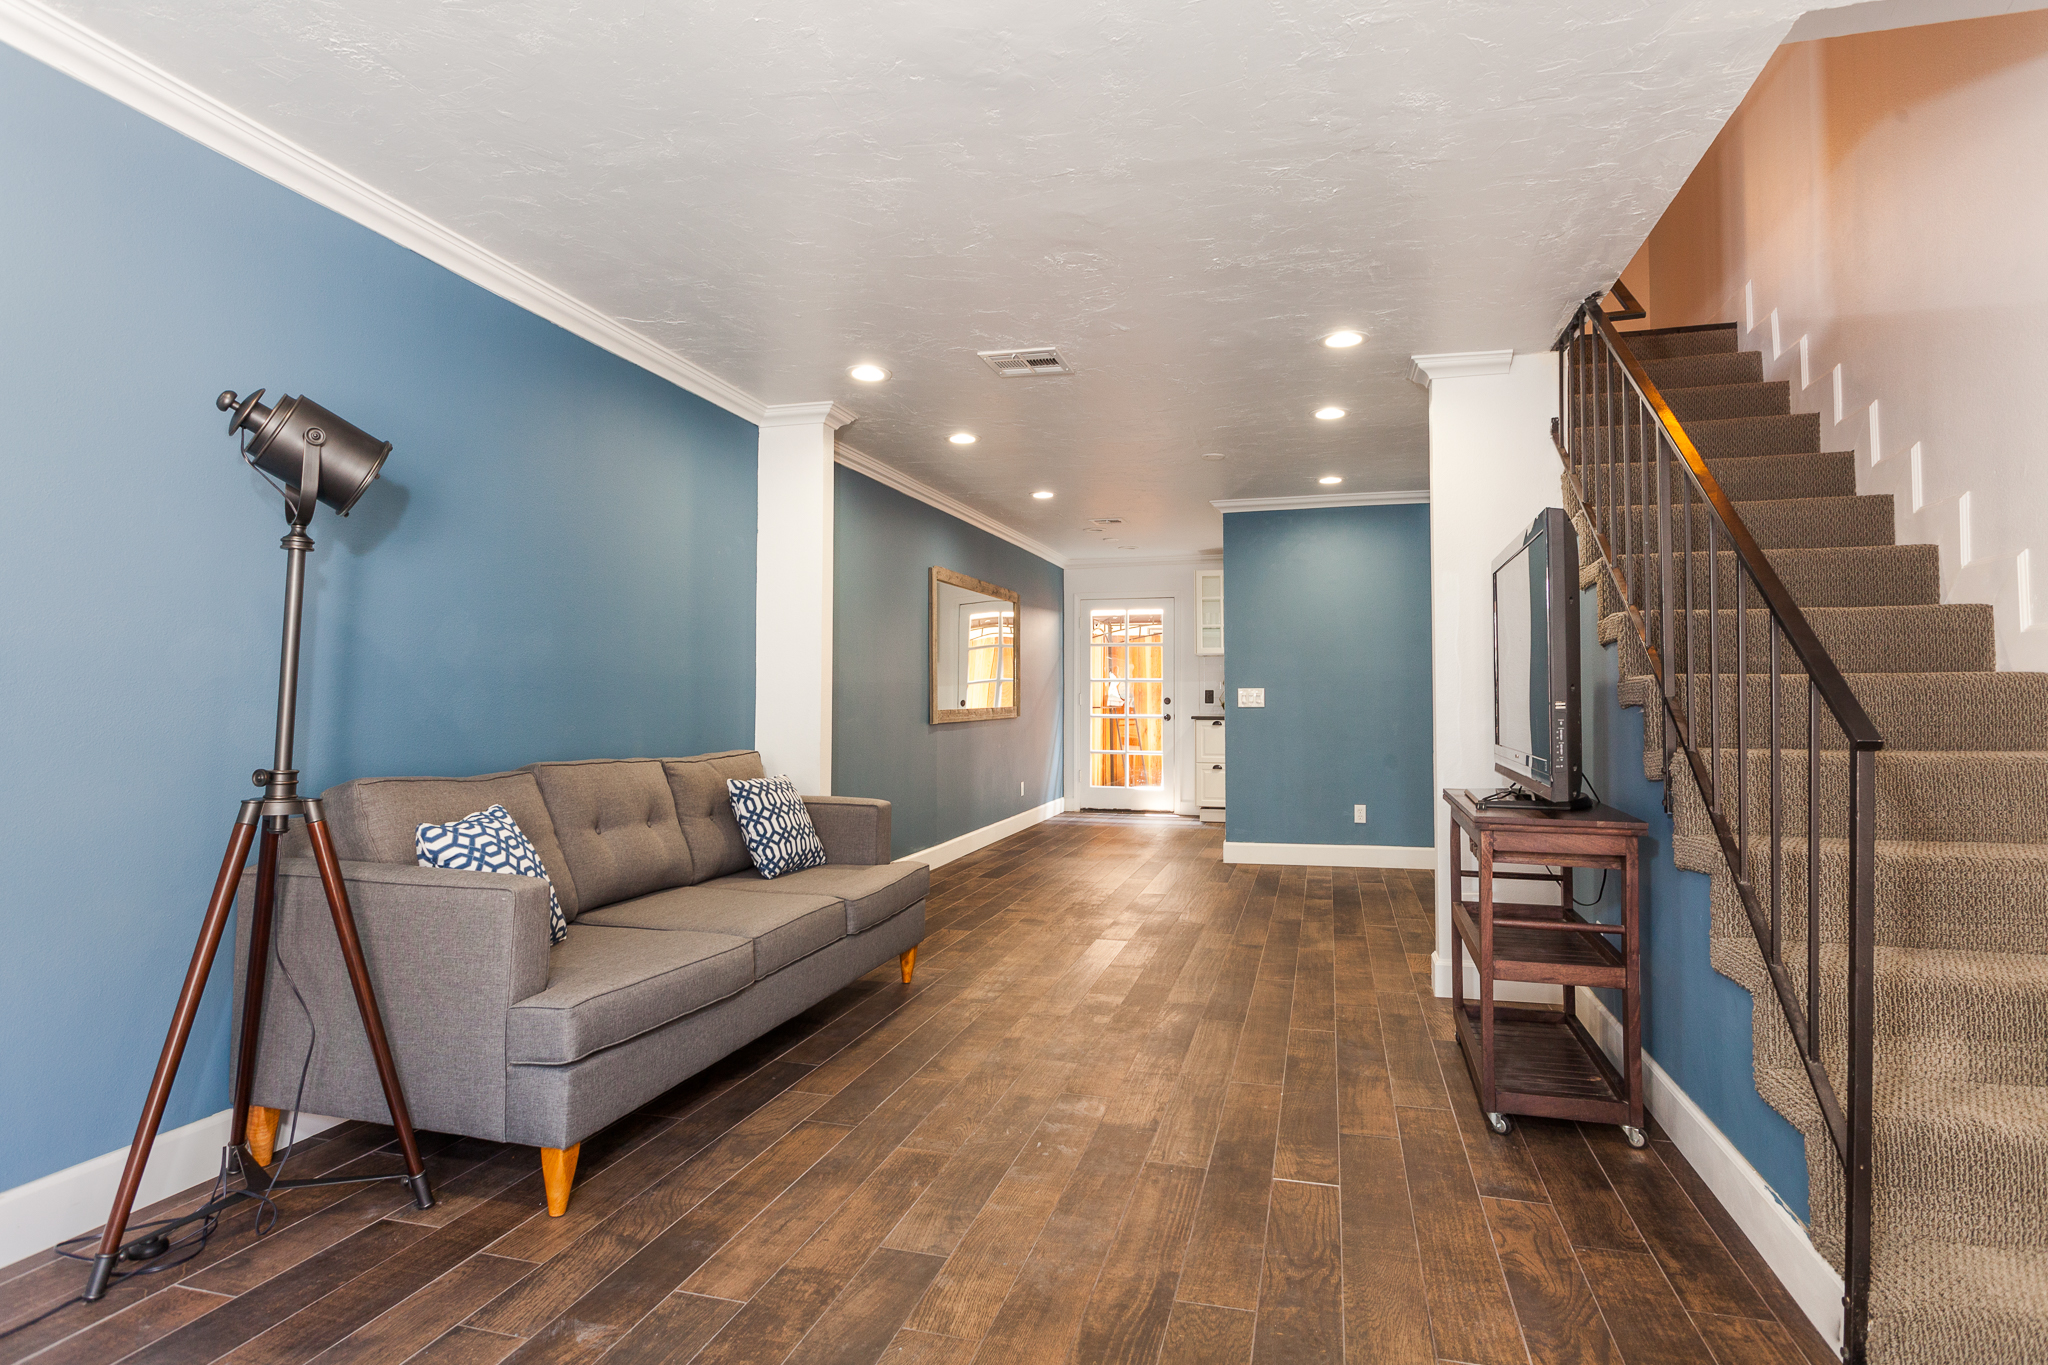 mls photography burbank